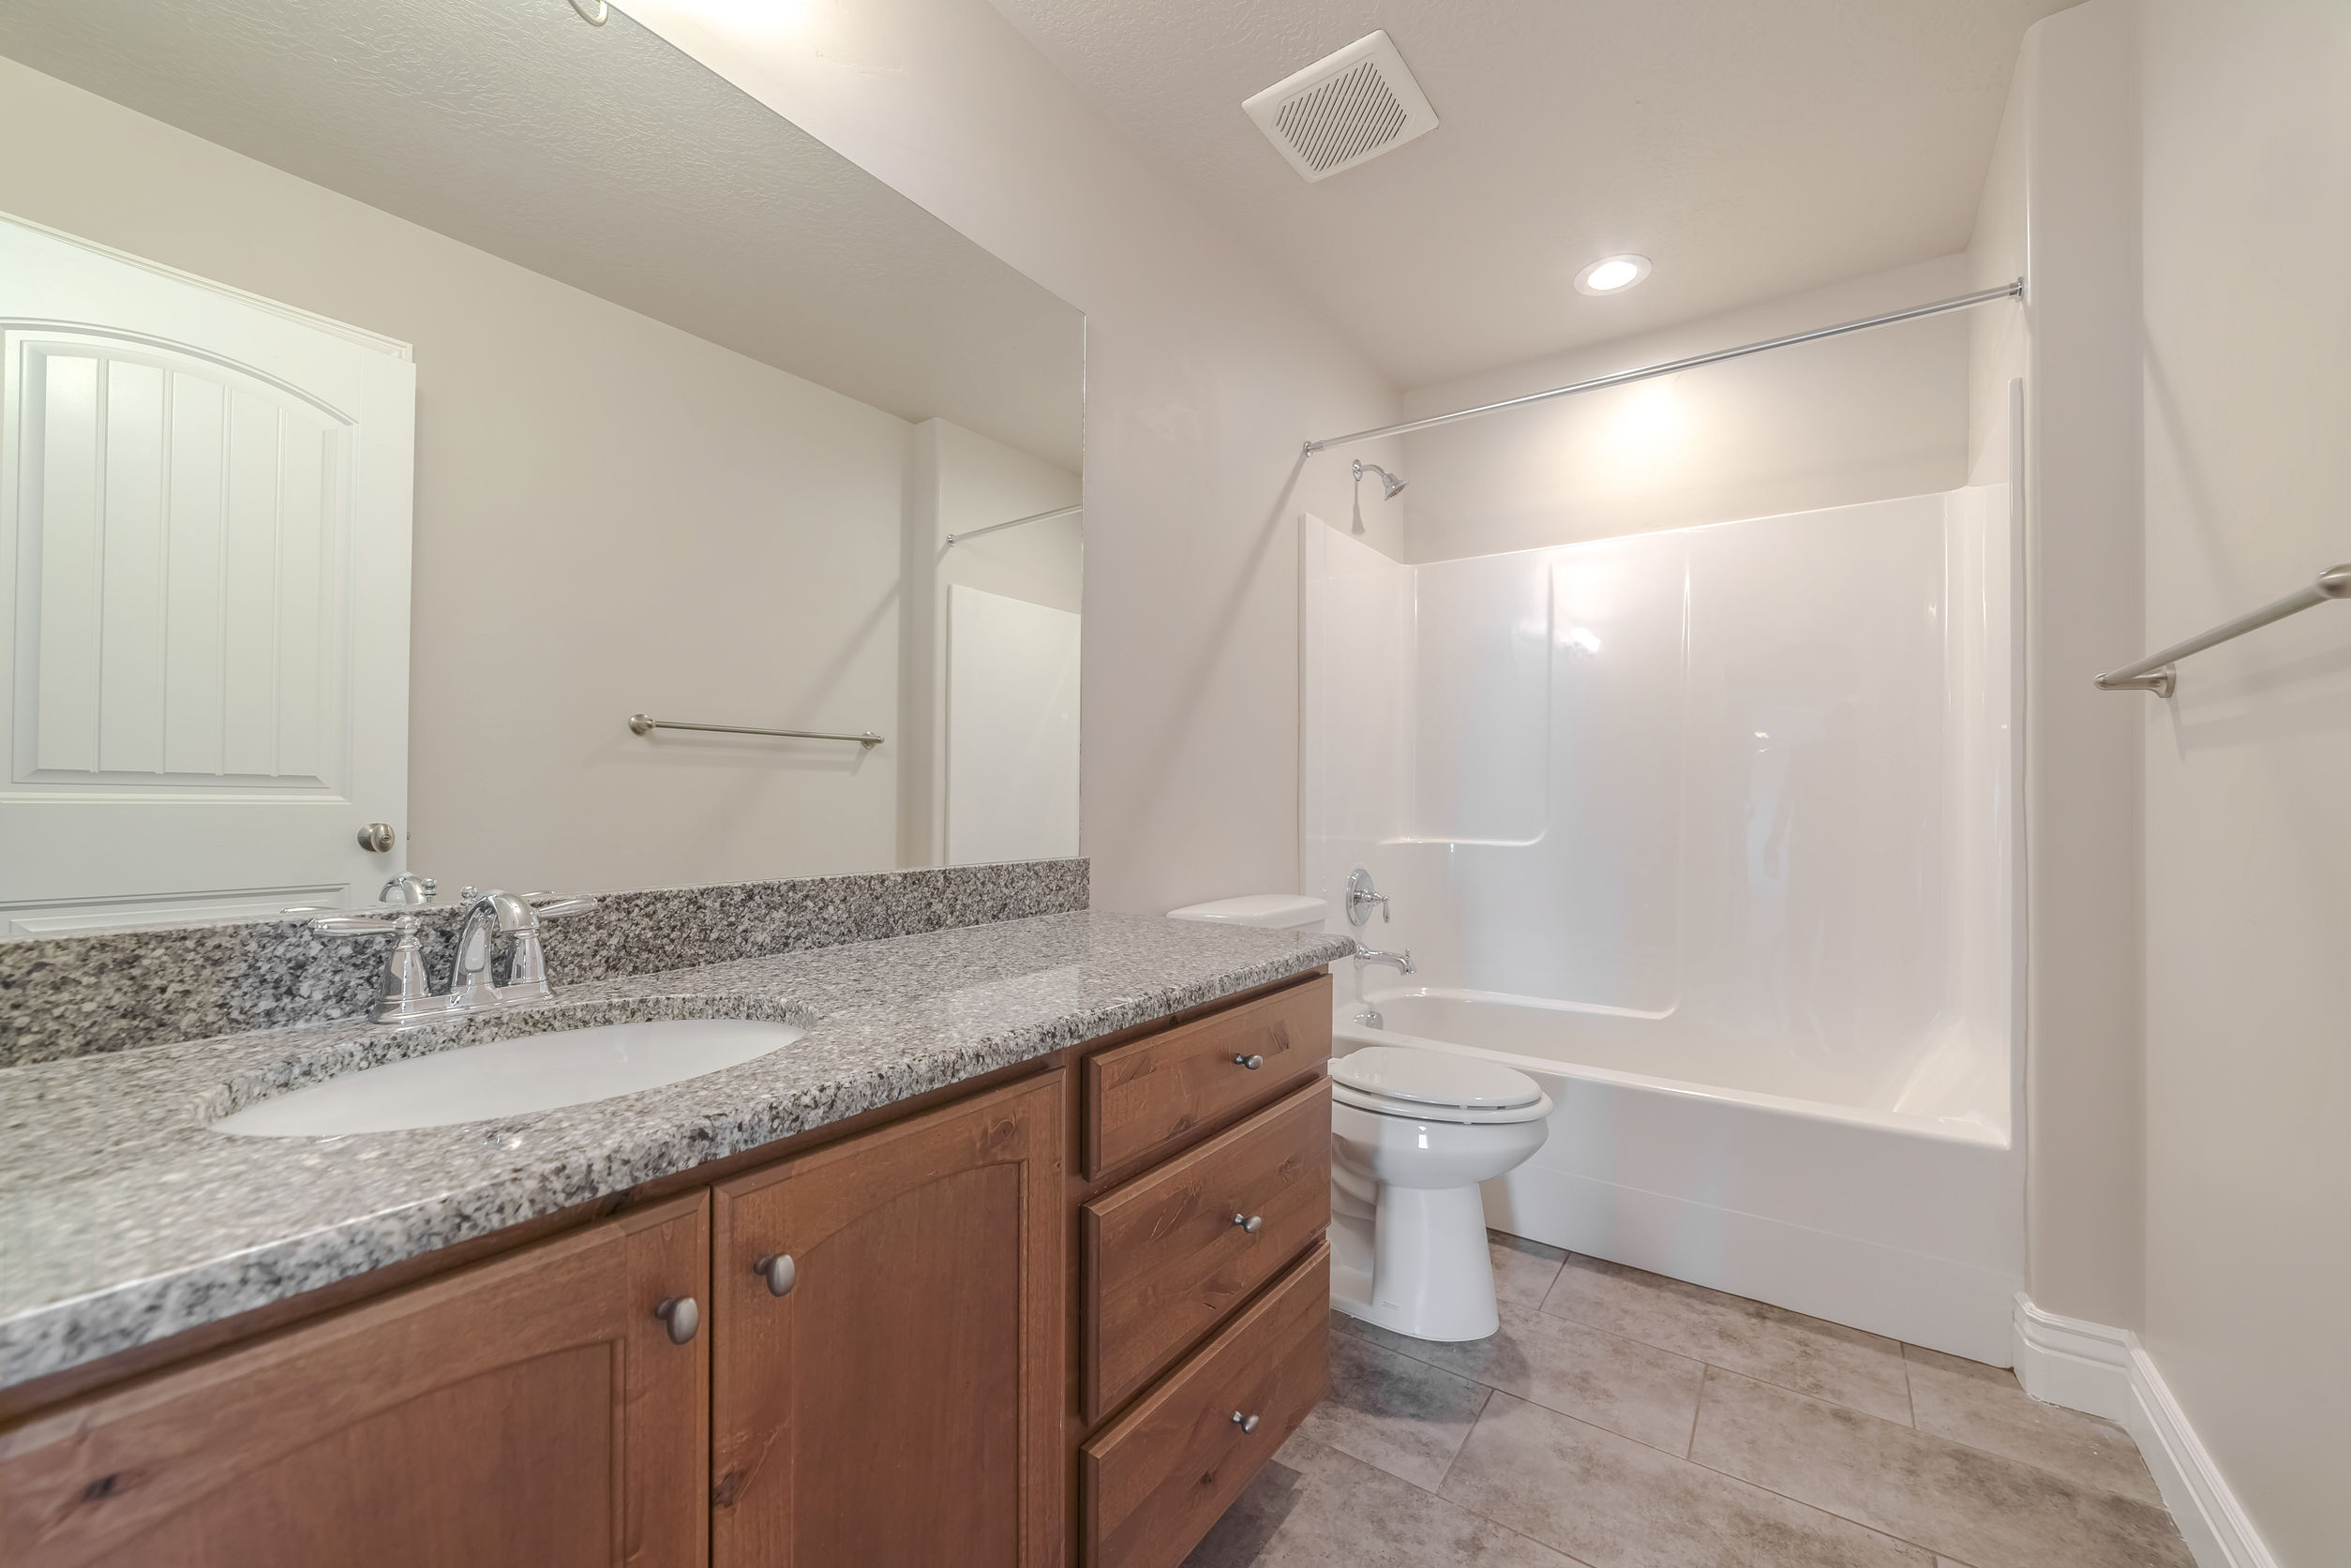 Interior of a modern bathroom with marble vanity